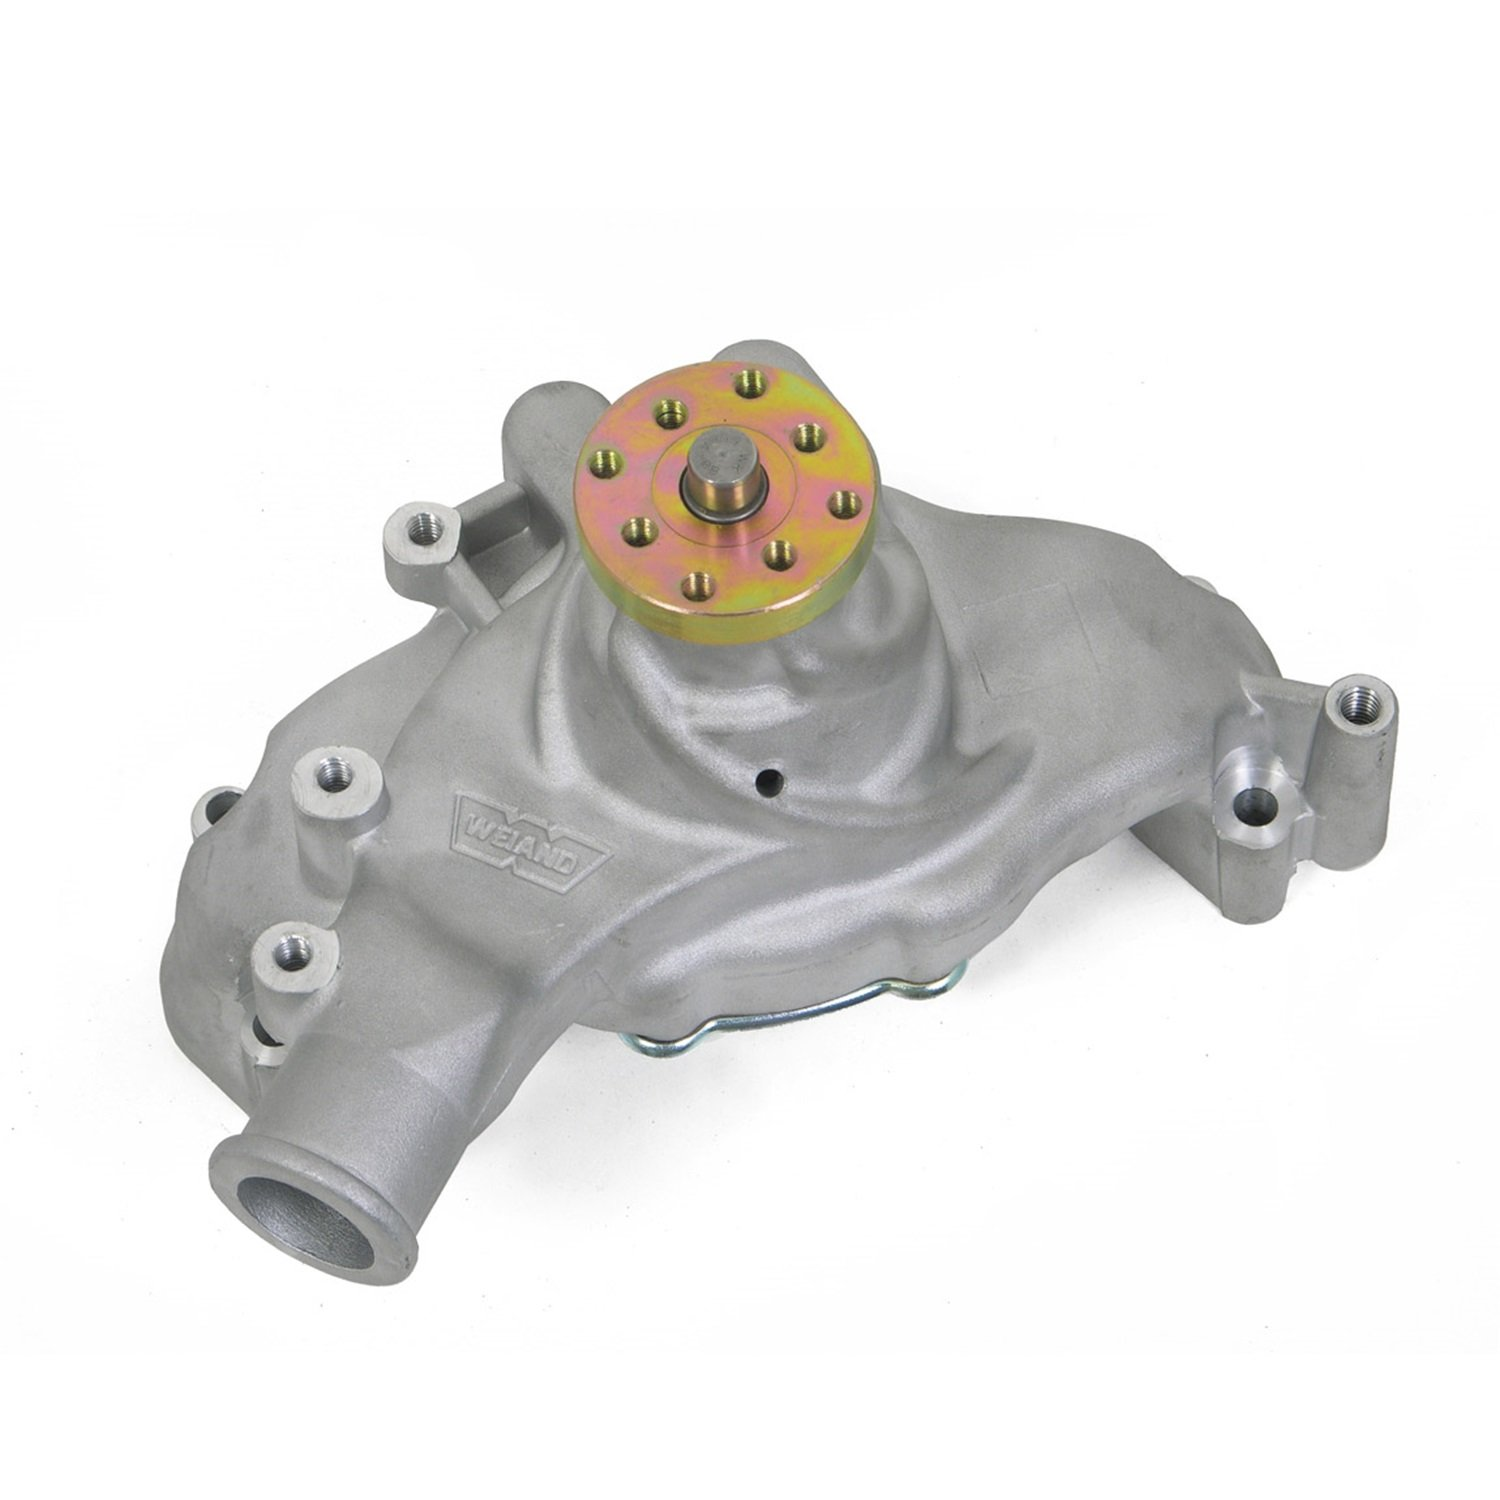 Weiand 9242 Action Plus Water Pump